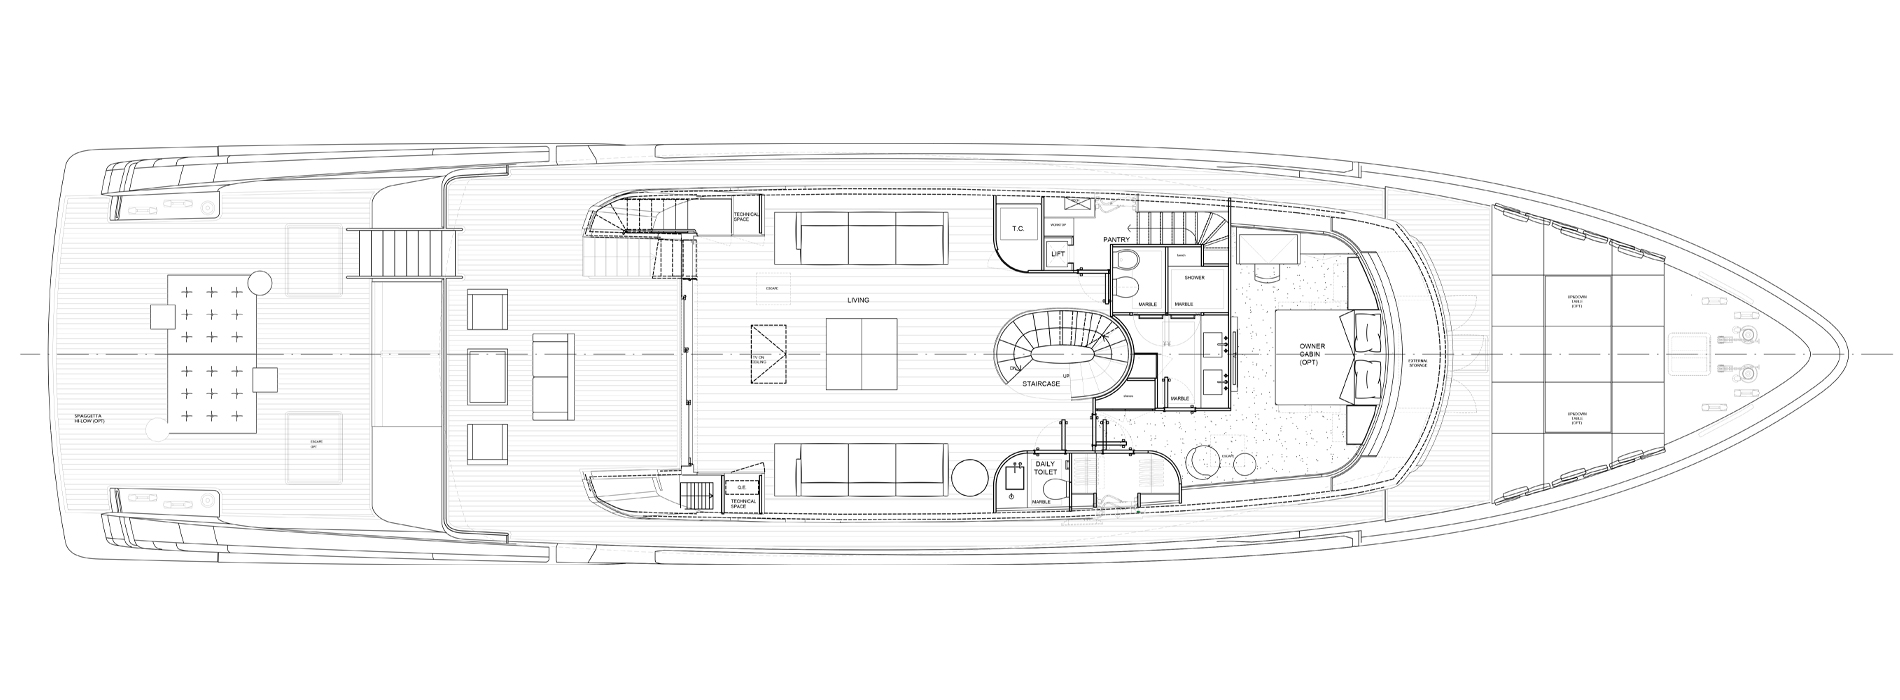 Sanlorenzo Yachts SX112 Main deck Version C